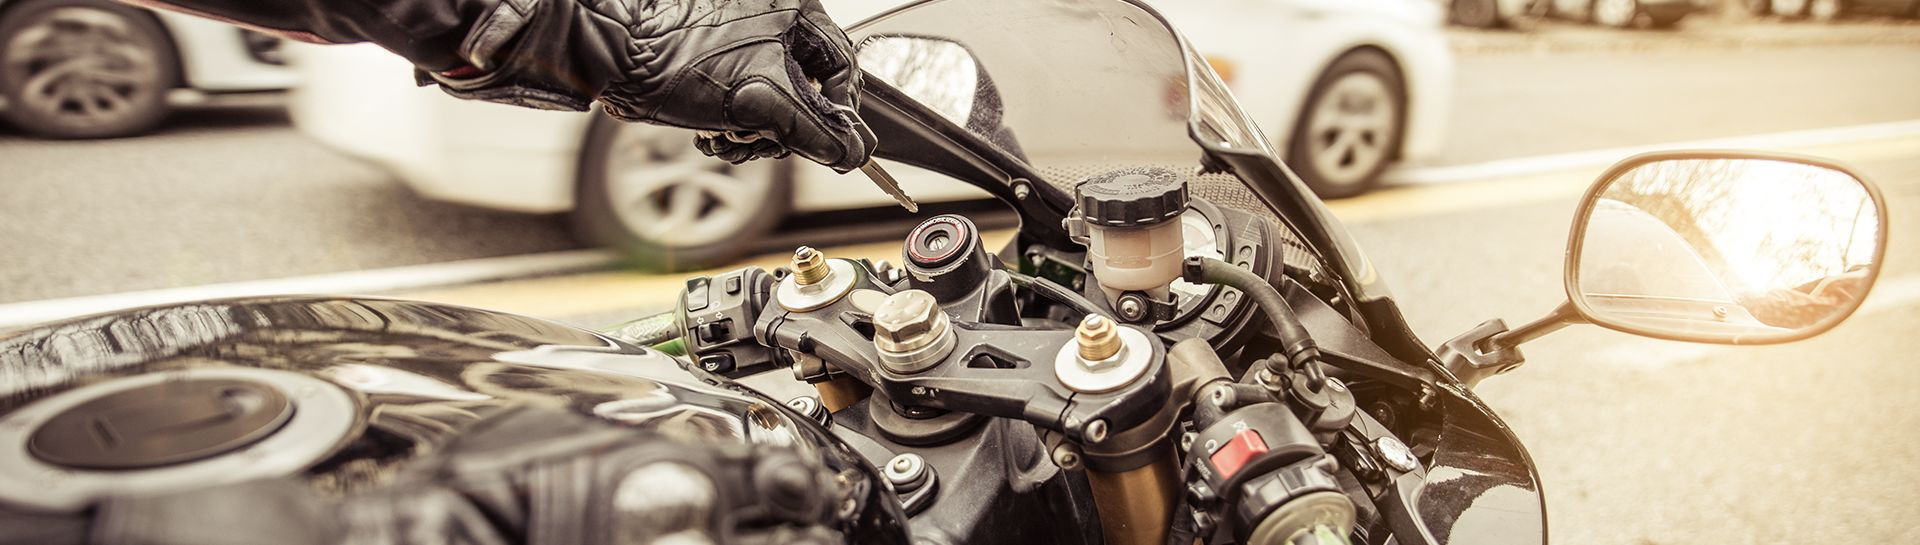 Motorcycle Crash Lawyer | Protect Yourself from Severe Injuries